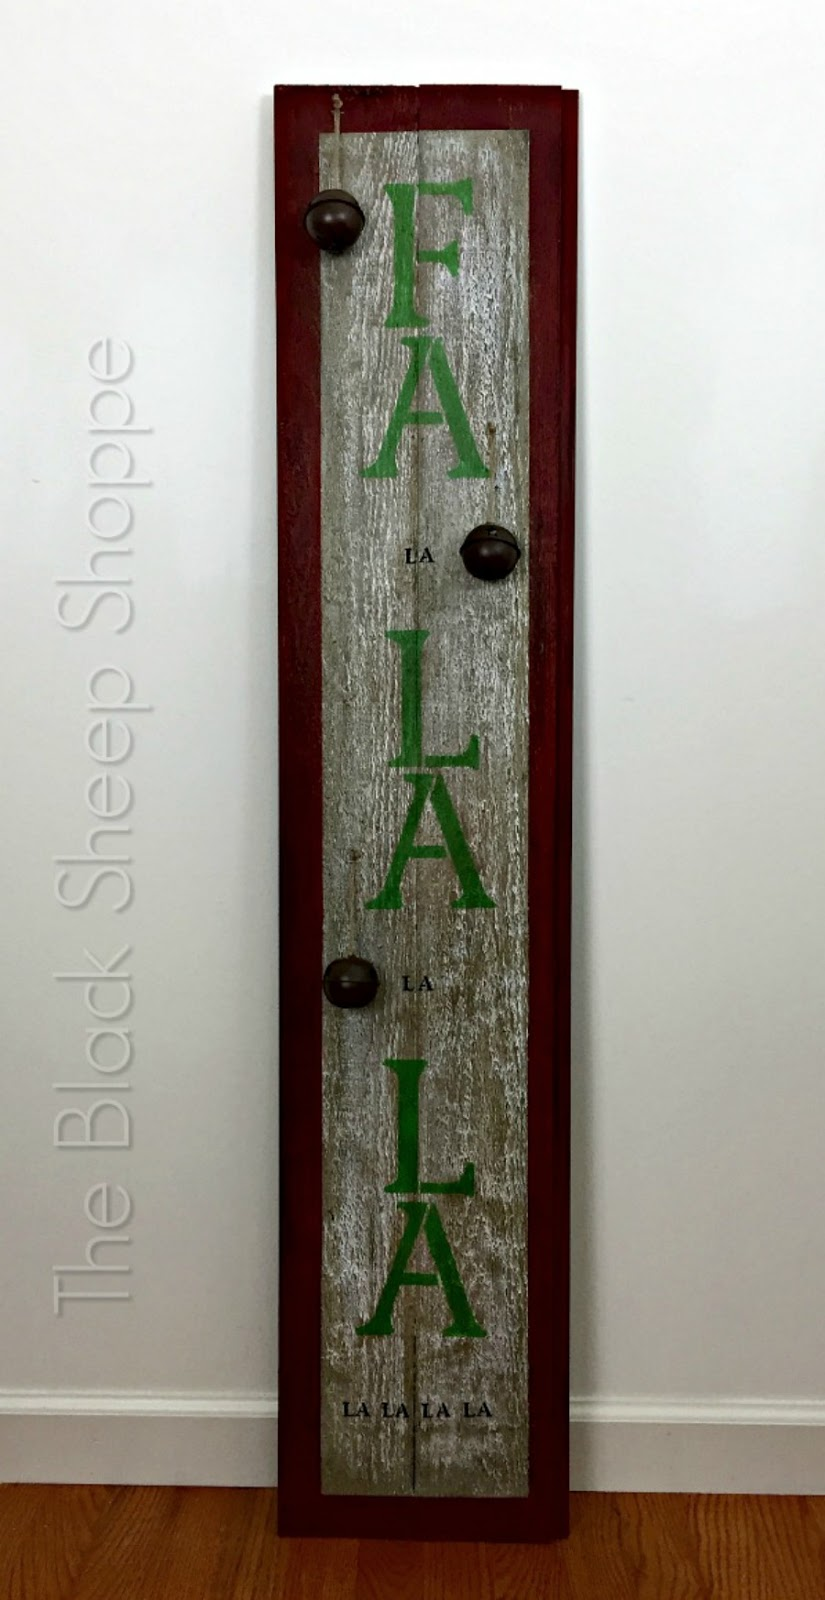 Fa la la holiday barn wood sign